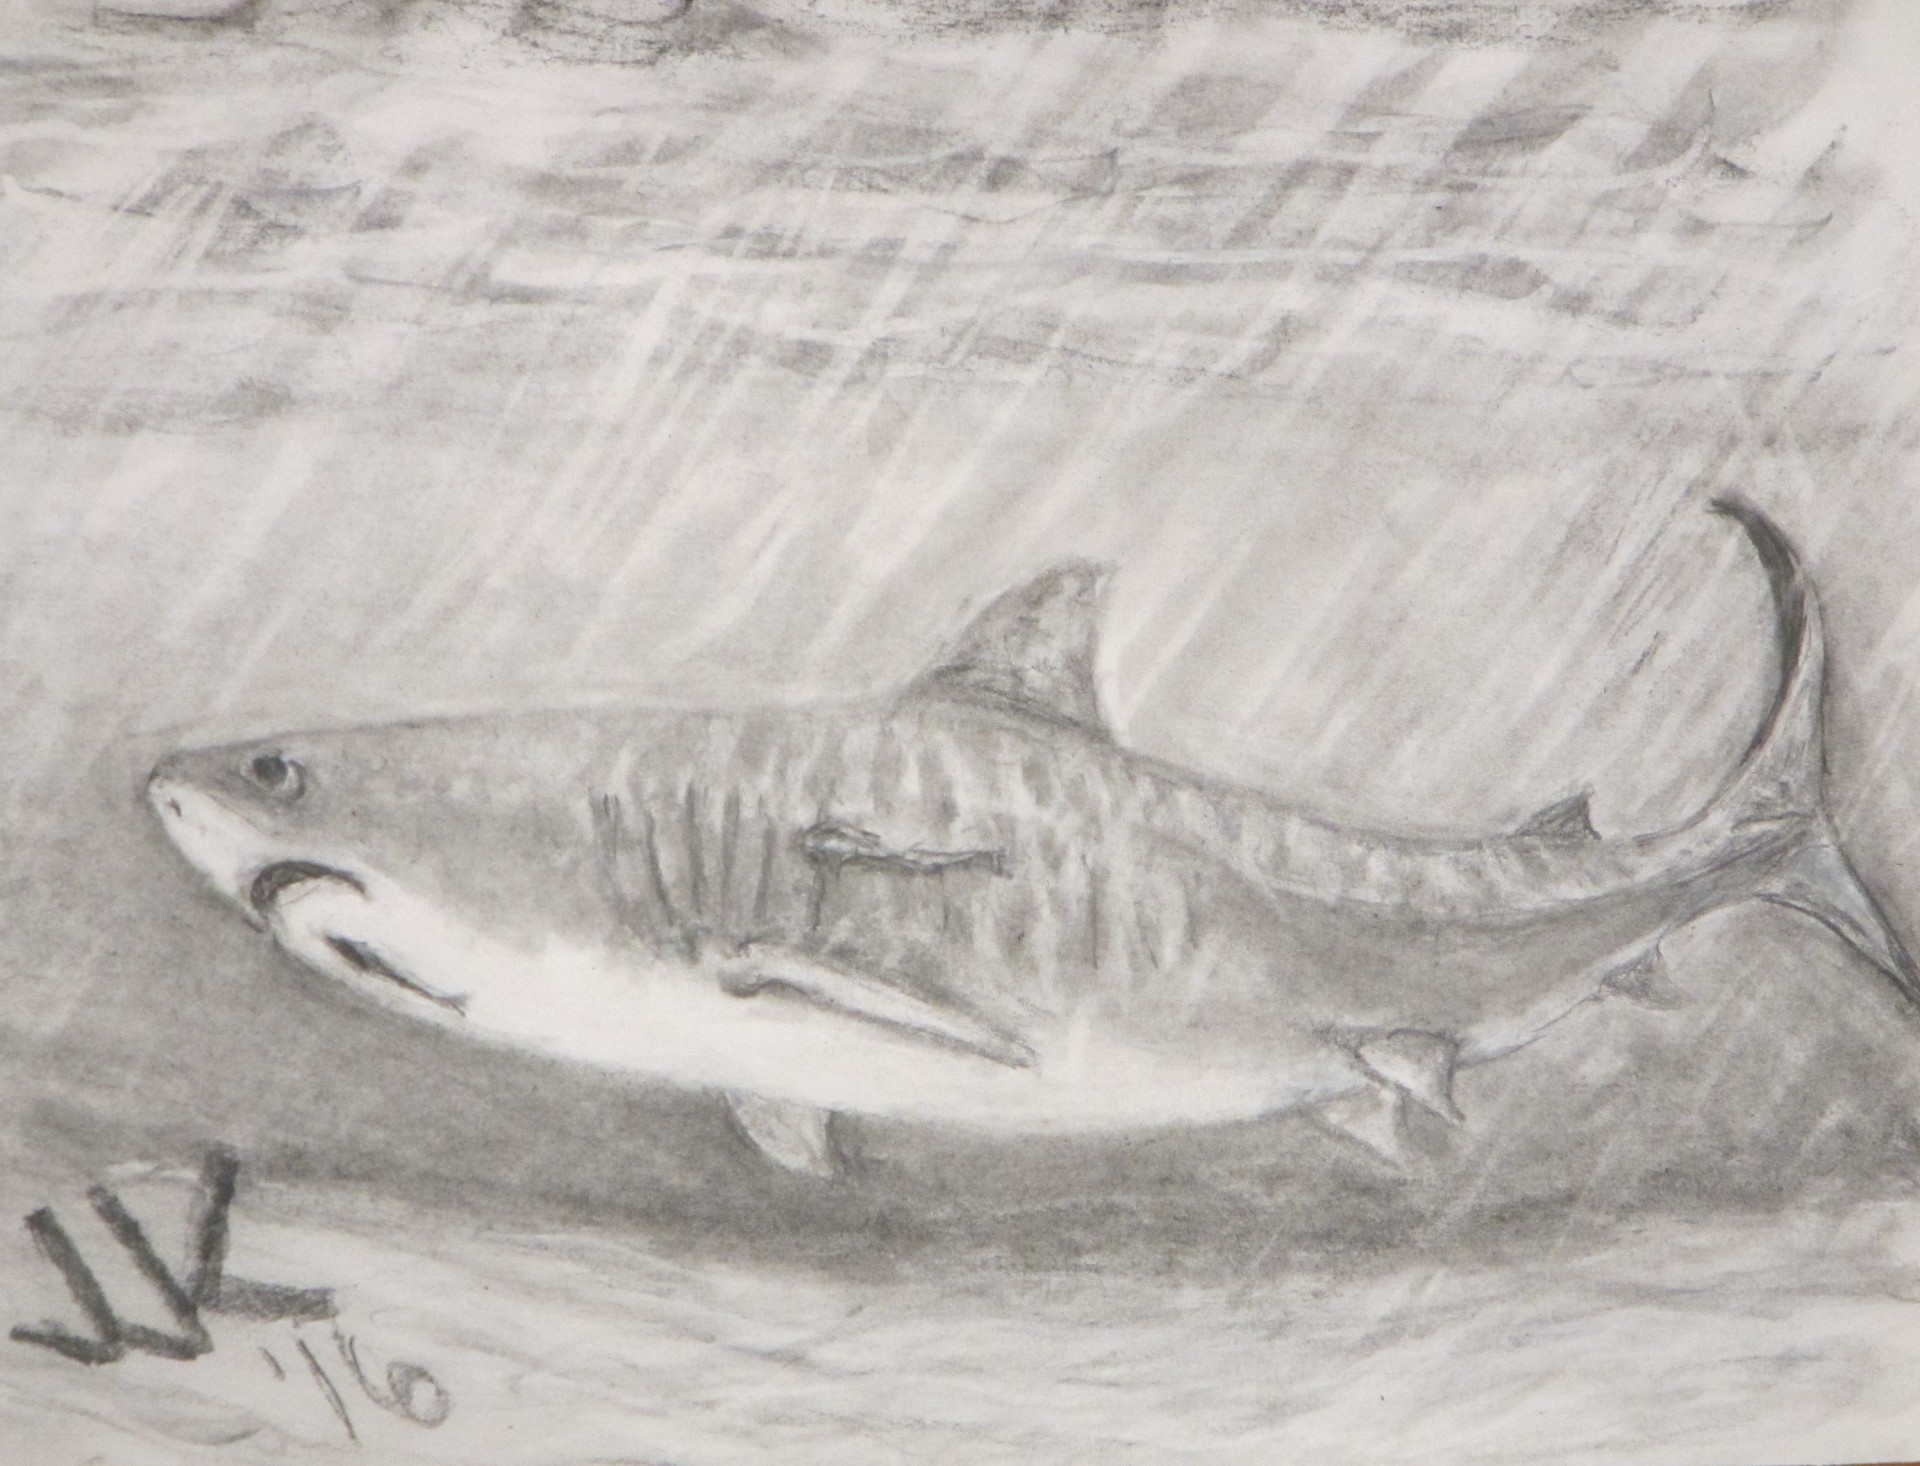 Pencil drawing of a tiger shark under water.